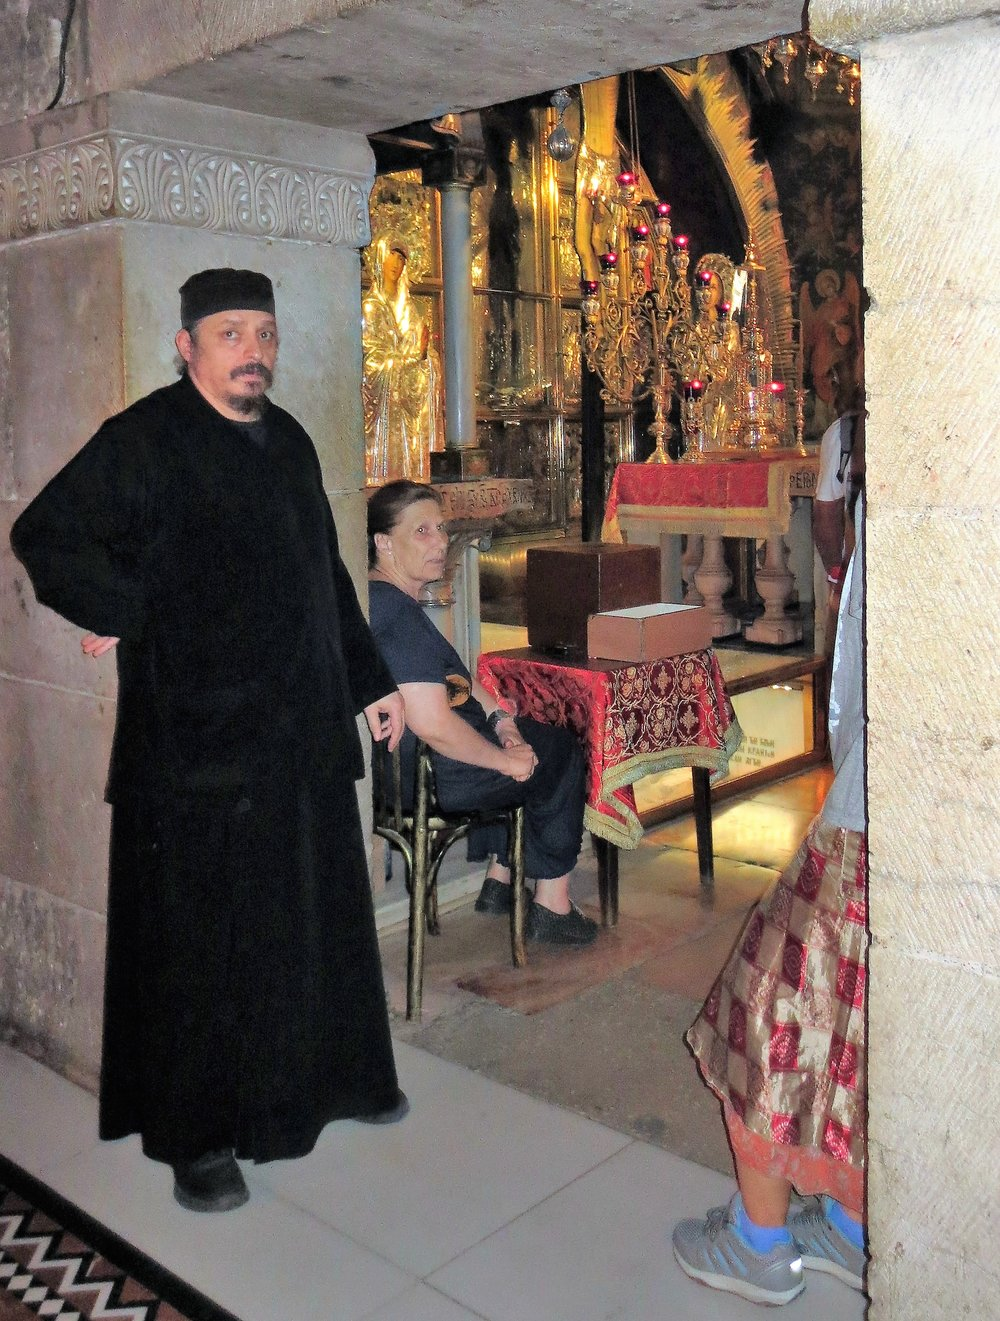 Armenian monk inside the Church of the Holy Sepulchre